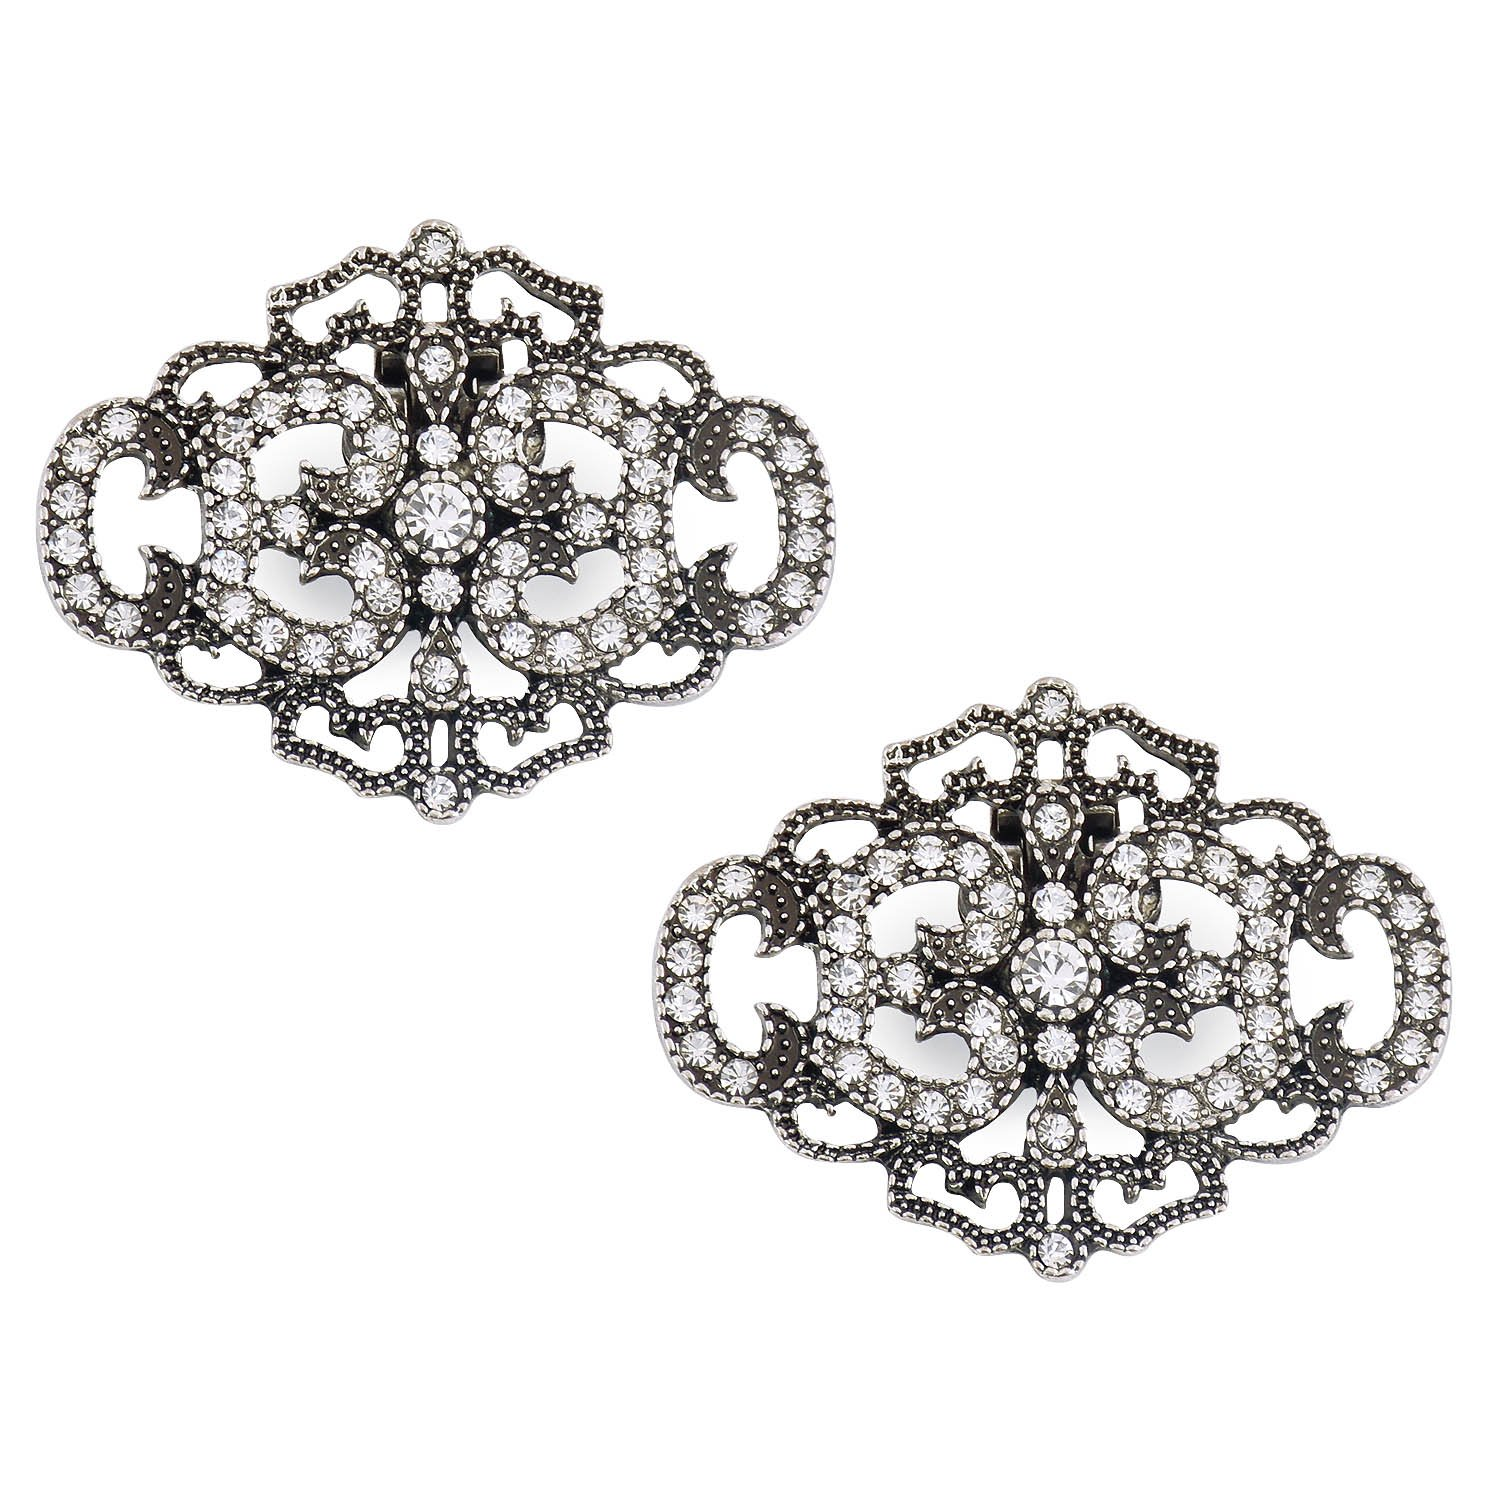 ElegantPark CK Antique Silver Crown Design Rhinestones Wedding Party Decoration Shoe Clips Silver 2 Pcs